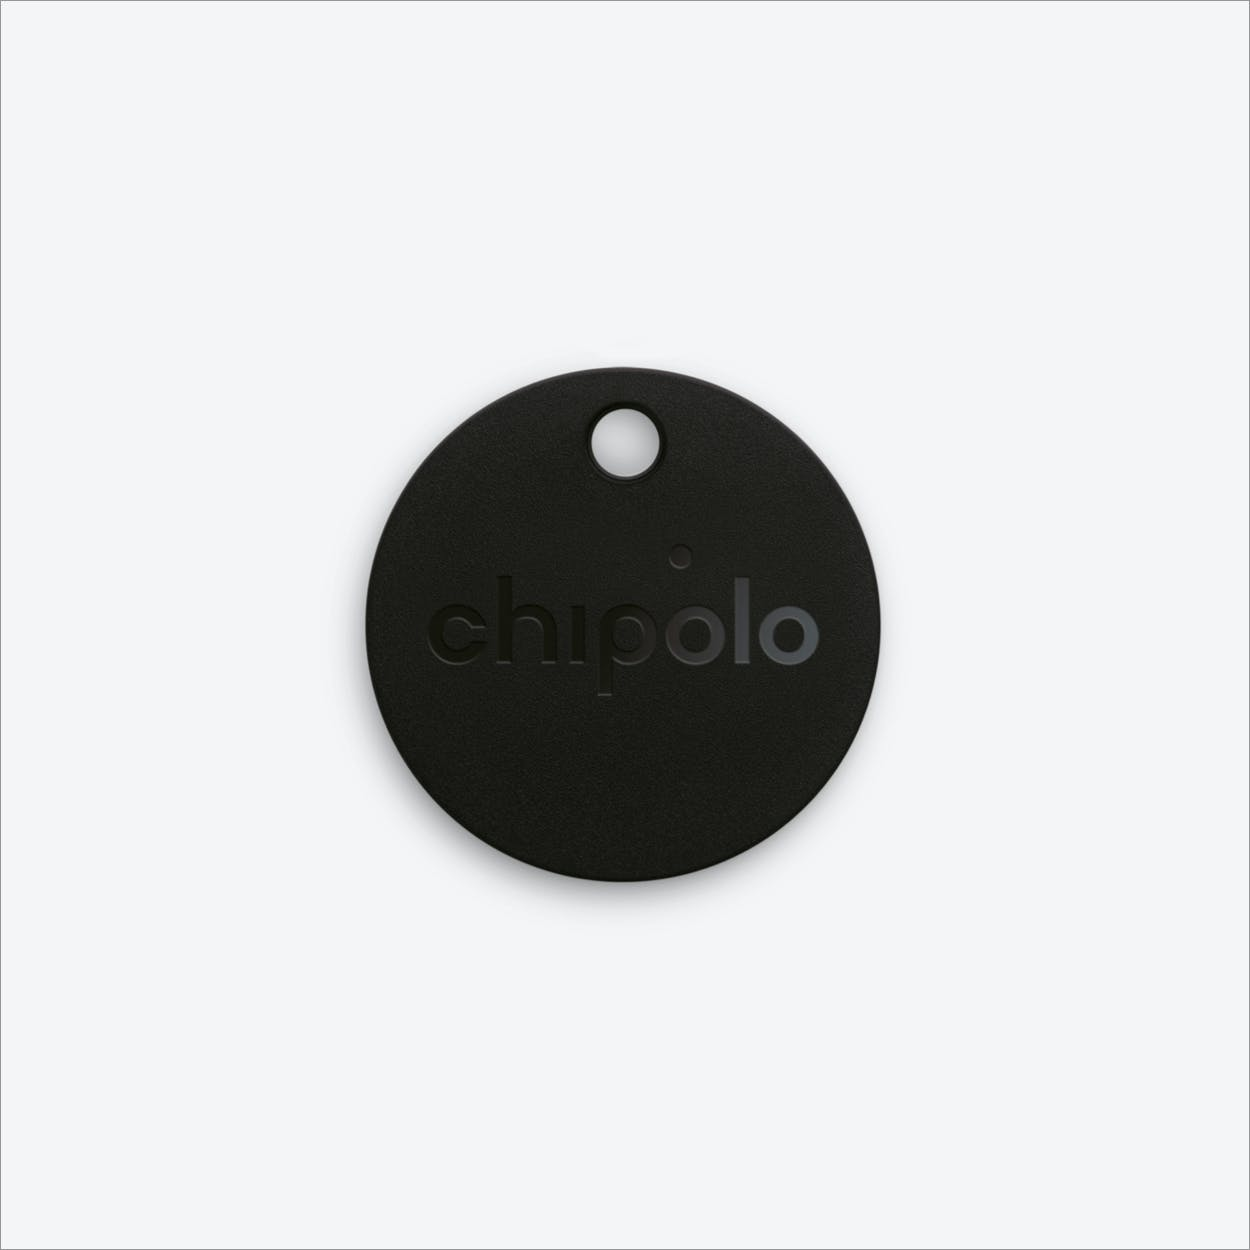 Chipolo Plus 2nd GEN BLACK